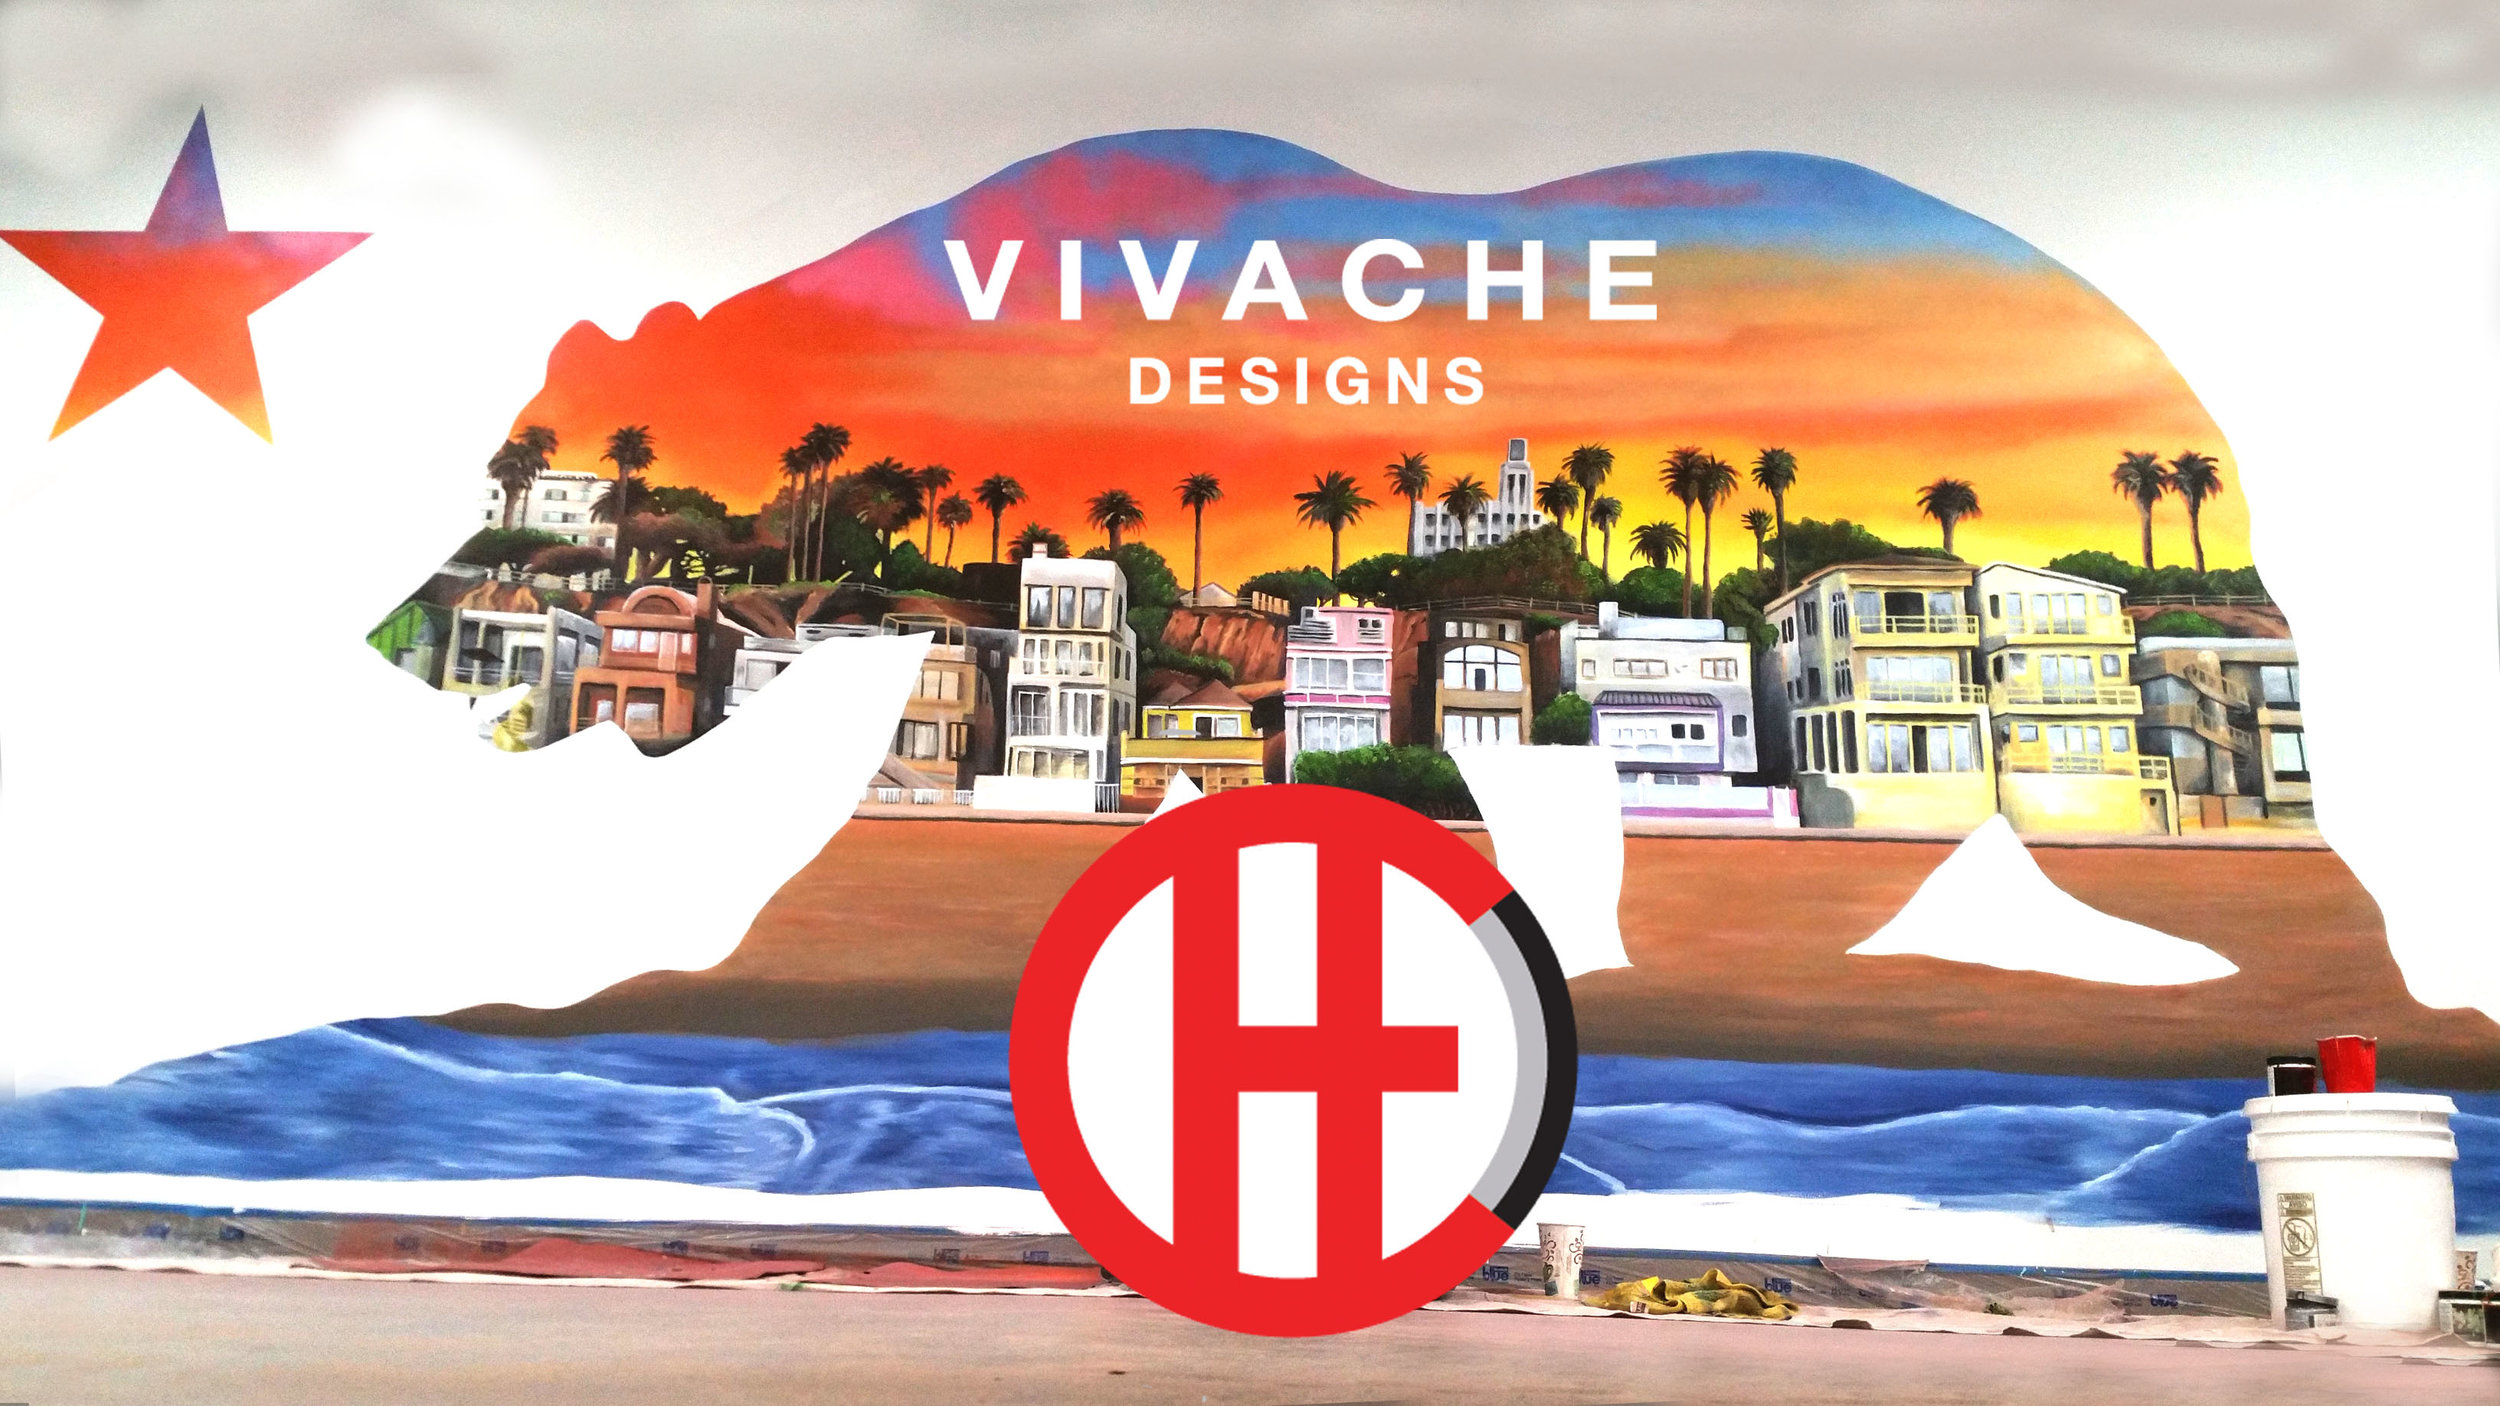 Mural Painter Vivache Designs' custom mural painting. We are your trusted mural painters. Give us a call for your free quote 1-866-VIVACHE now. We look forward to hearing more about your mural painting project.